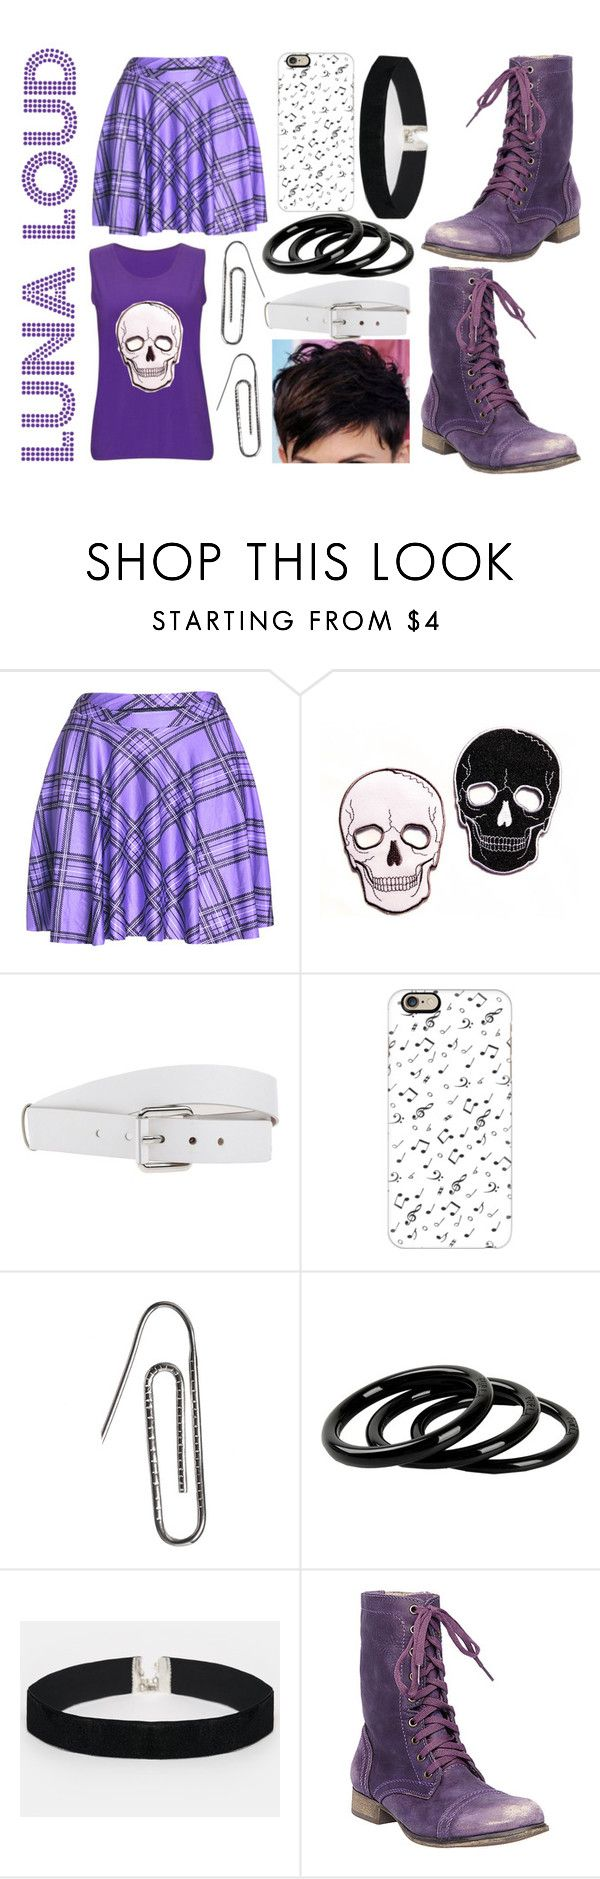 """Luna Loud (The Loud House) + Random Questions tag RTD!"" by lilithgemini ❤ liked on Polyvore featuring Michael Kors, Casetify, Carrie K., Furla, ASOS, Steve Madden and theloudhouse"